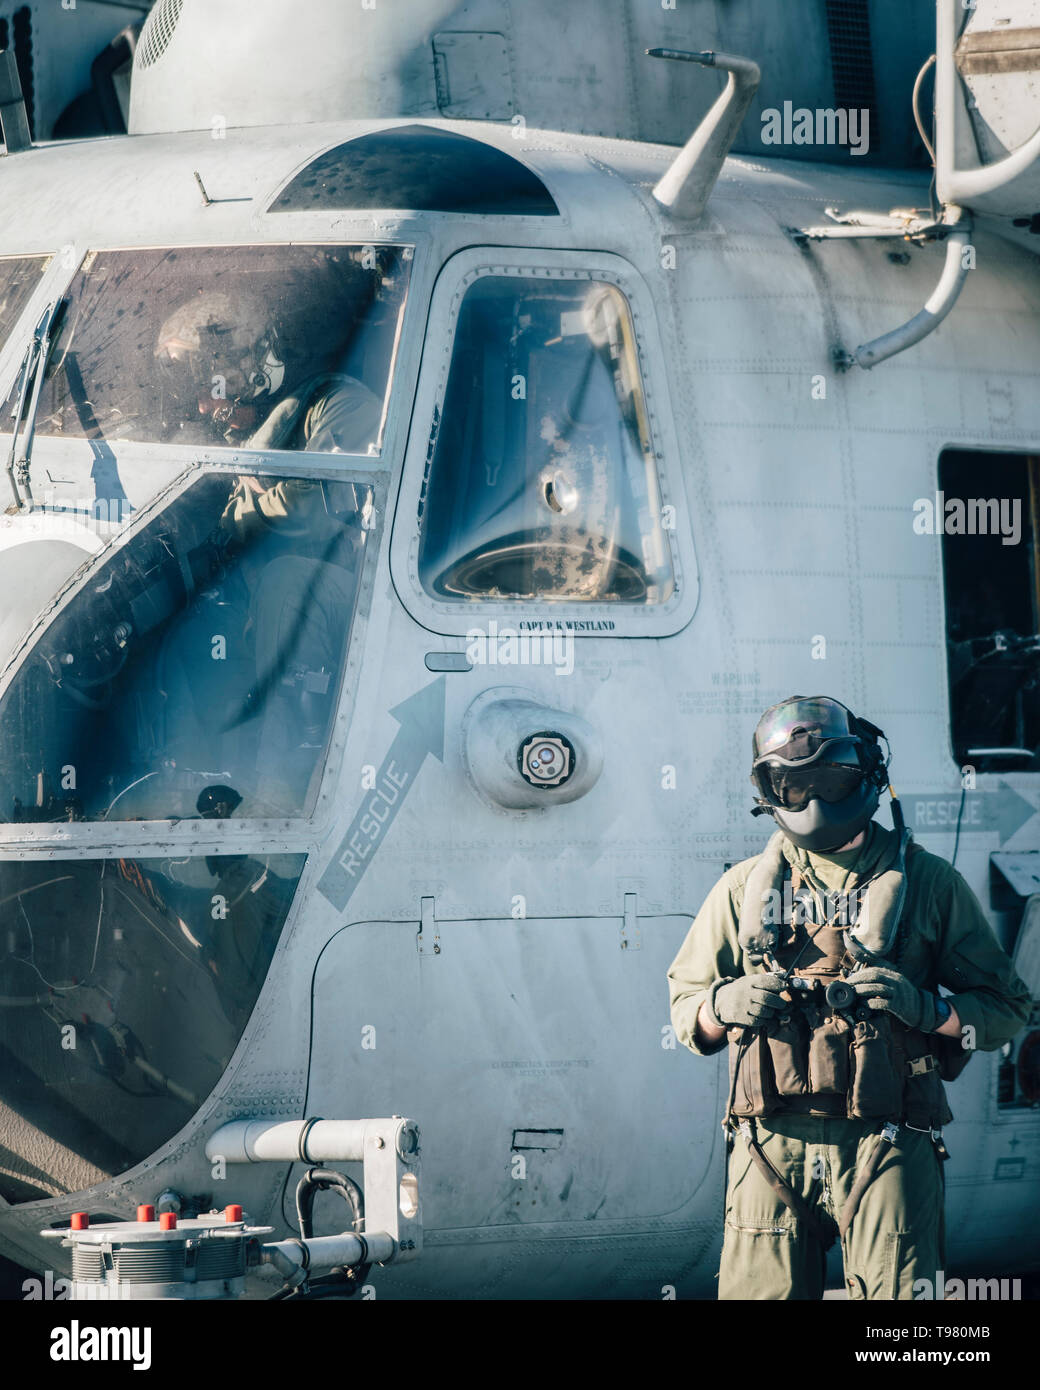 190511-M-HB658-0028 PACIFIC OCEAN (May 11, 2019) A U.S. Marine Corps CH-53E Super Stallion crew chief with Marine Medium Tiltrotor Squadron (VMM) 163 (Reinforced), 11th Marine Expeditionary Unit (MEU), stands beside an aircraft aboard the San Antonio-class amphibious transport dock ship USS John P. Murtha (LPD 26). The Marines and Sailors of the 11th MEU are conducting routine operations as part of the Boxer Amphibious Ready Group. (U.S. Marine Corps photo by Staff Sgt. Donald Holbert) - Stock Image